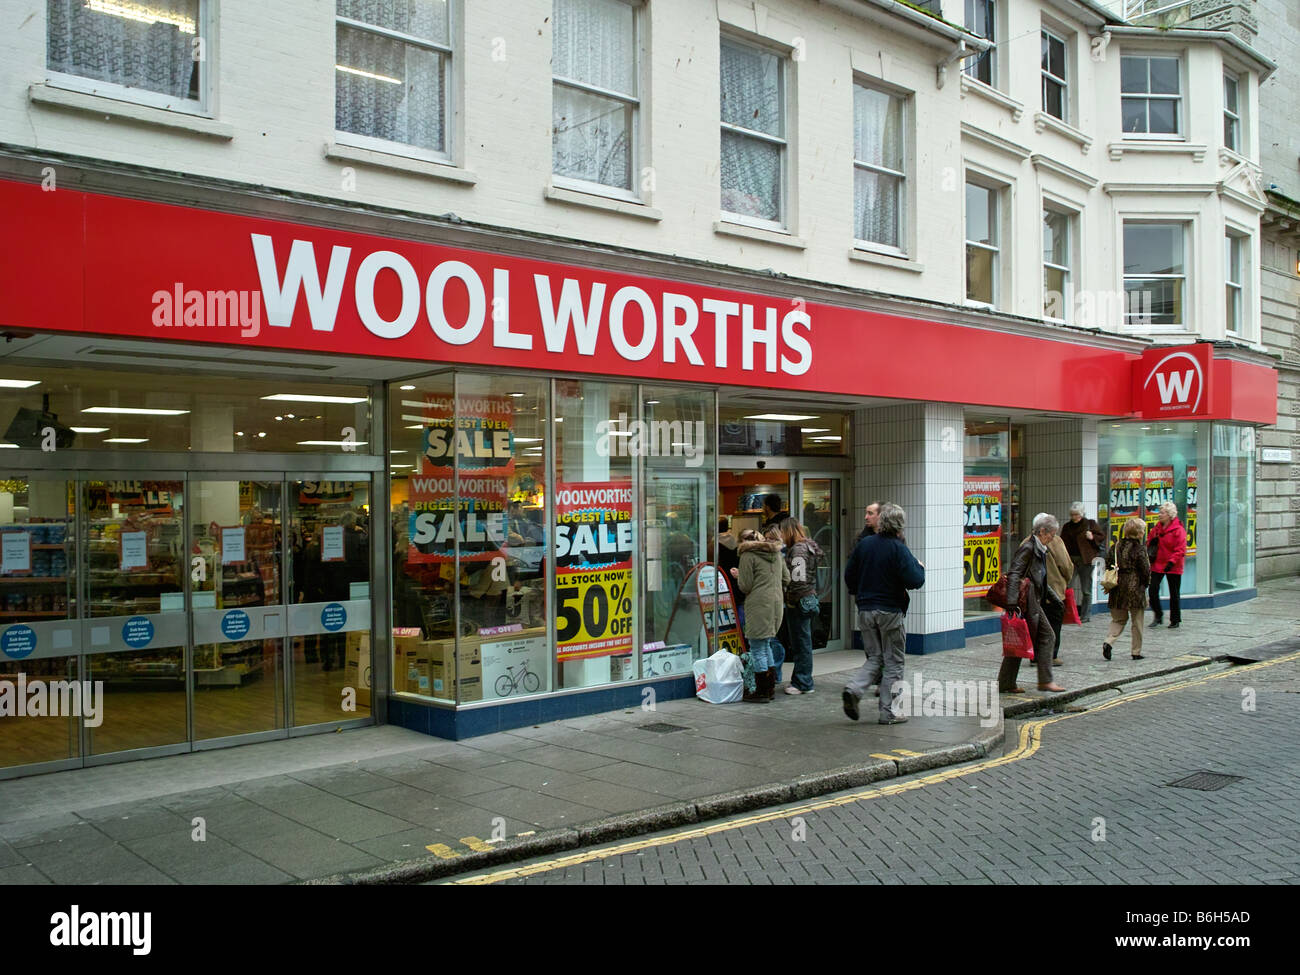 woolworths outage - photo #41